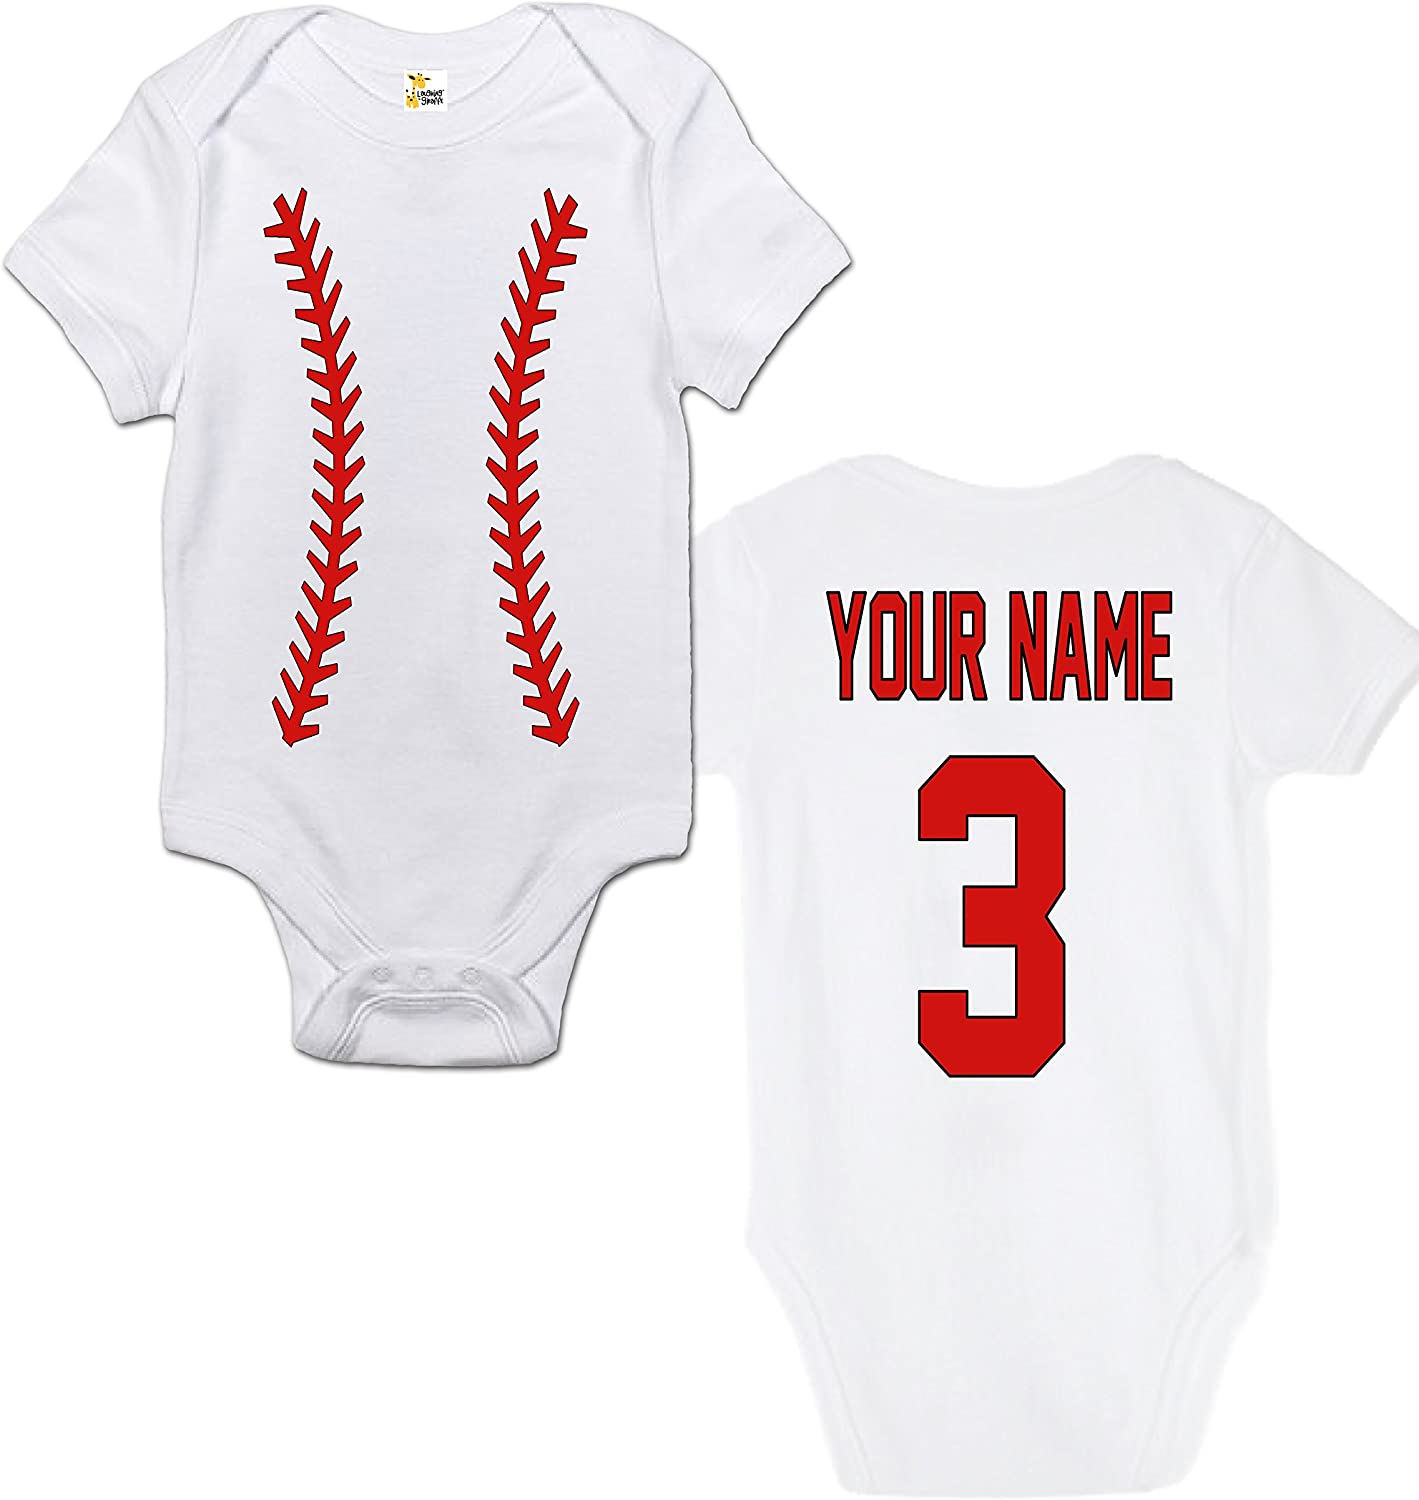 Laughing Giraffe Baseball Custom Personalized One-Piece Baby Bodysuit with Your Name and Number